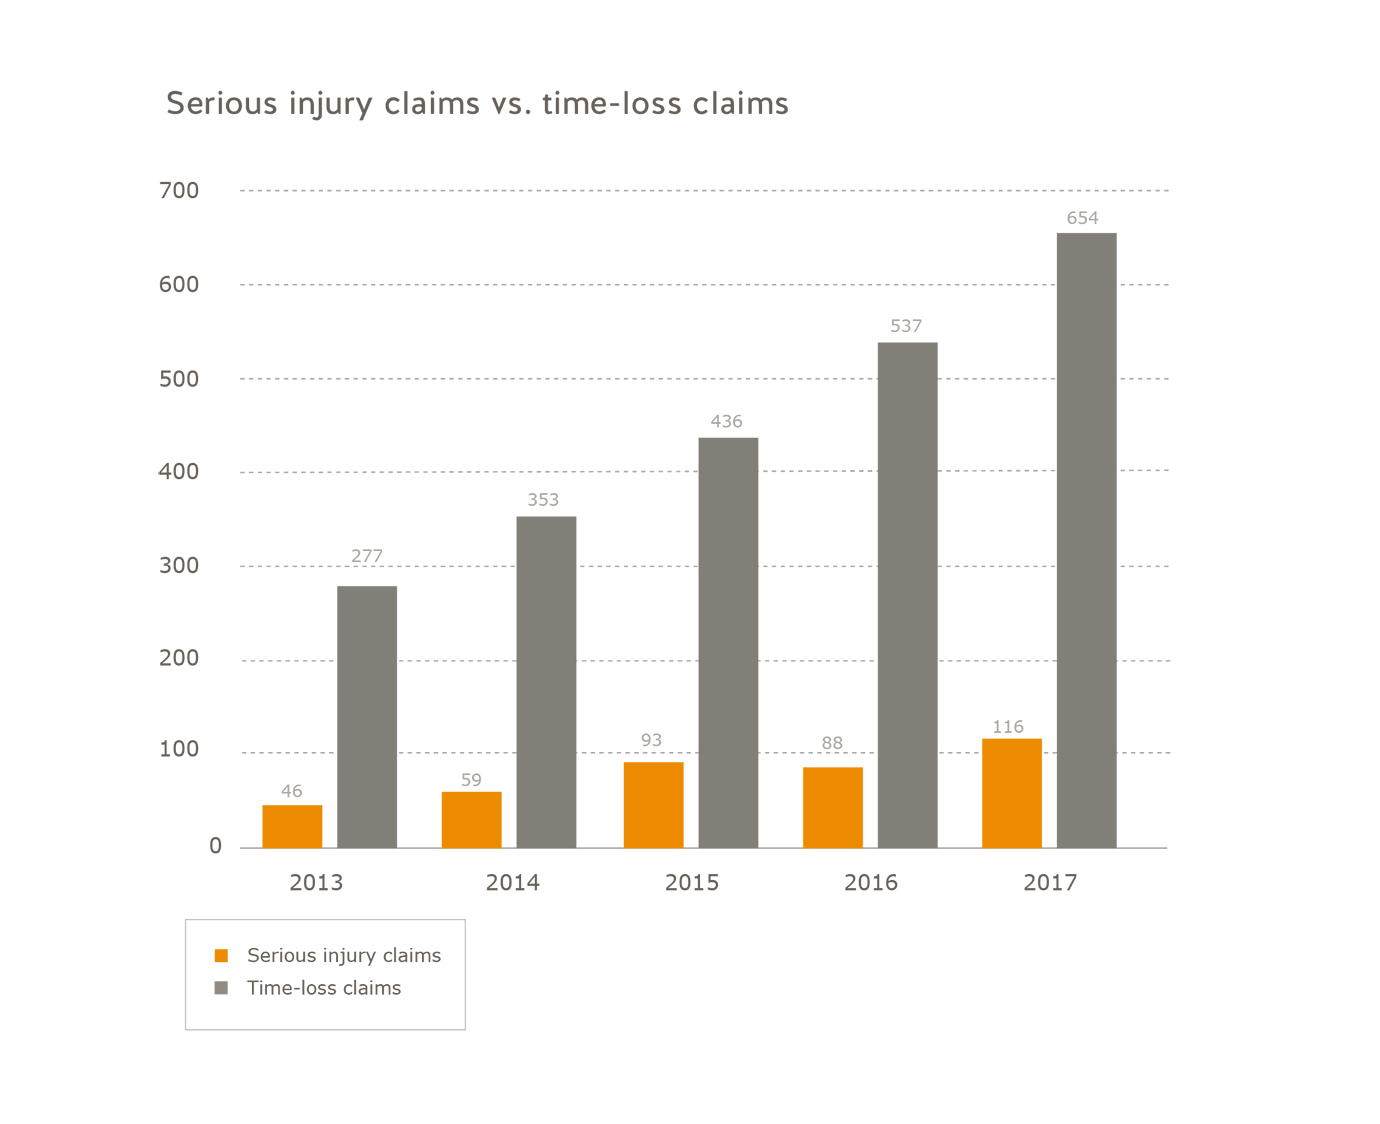 Number of serious injury claims vs. number of time-loss claims oil and gas industry 2013 to 2017. Number of serious injury claims: 2013 = 22, 2014 = 28, 2015 = 31, 2016 = 17, 2017 = 18. Number of time-loss claims: 2013 = 85, 2014 = 107, 2015 = 72, 2016 = 46, 2017 = 63.